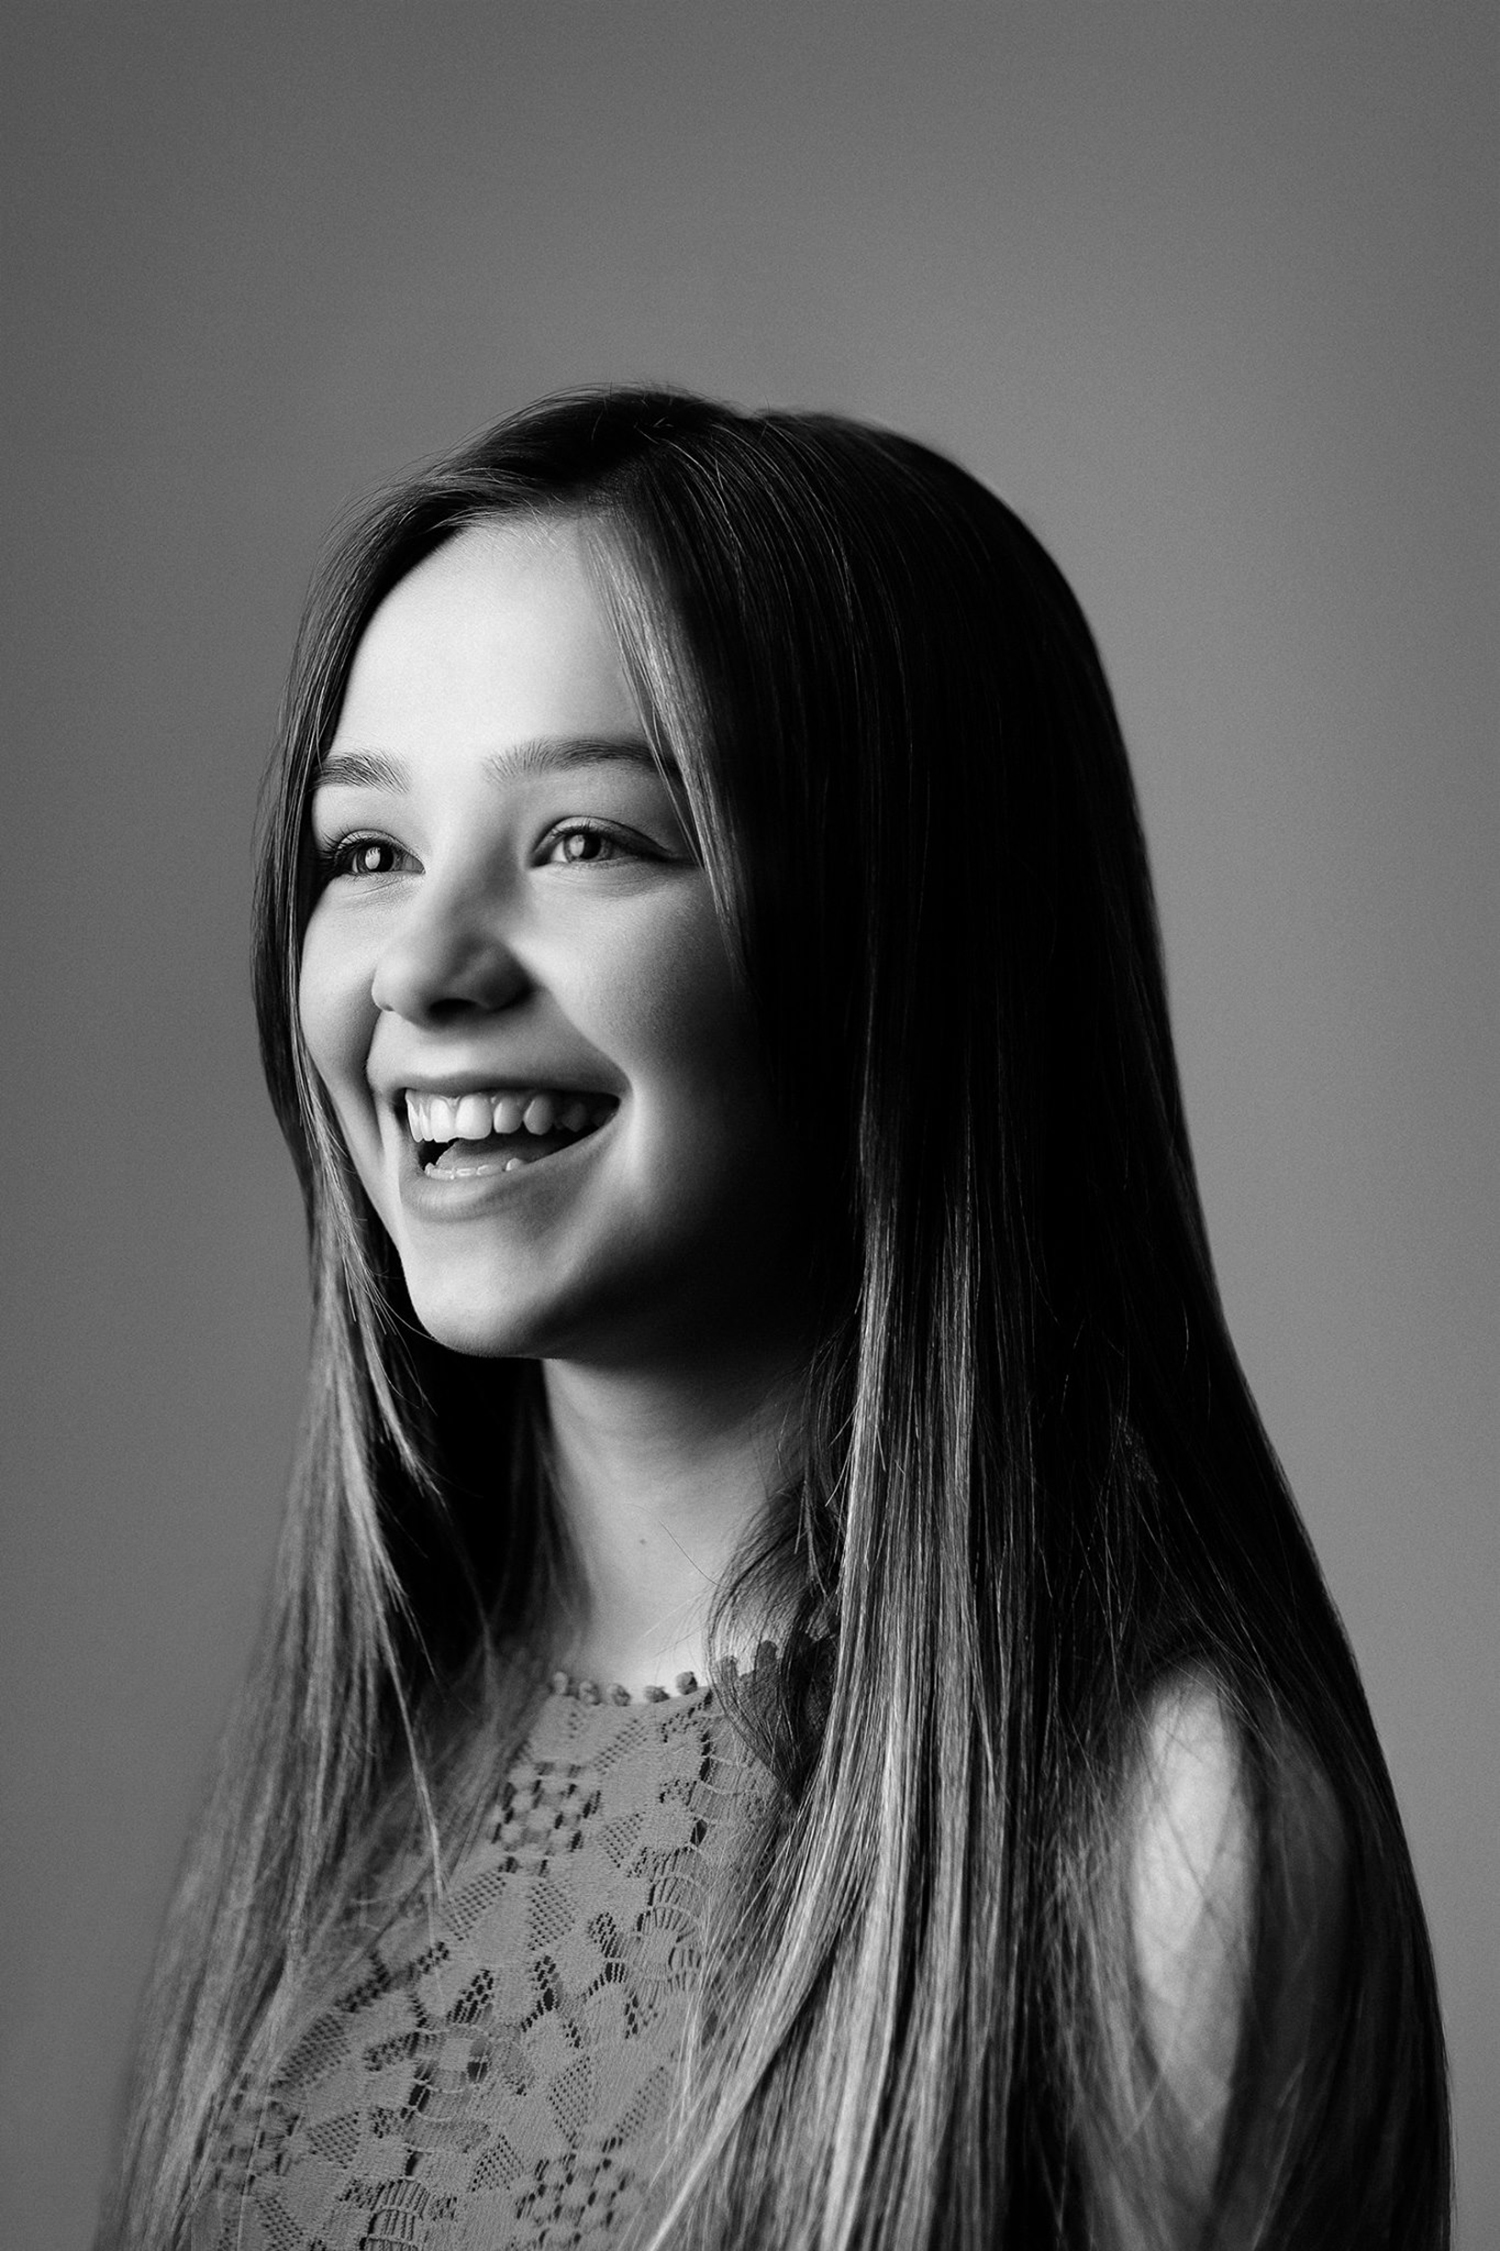 Connie Talbot for Sony BMG